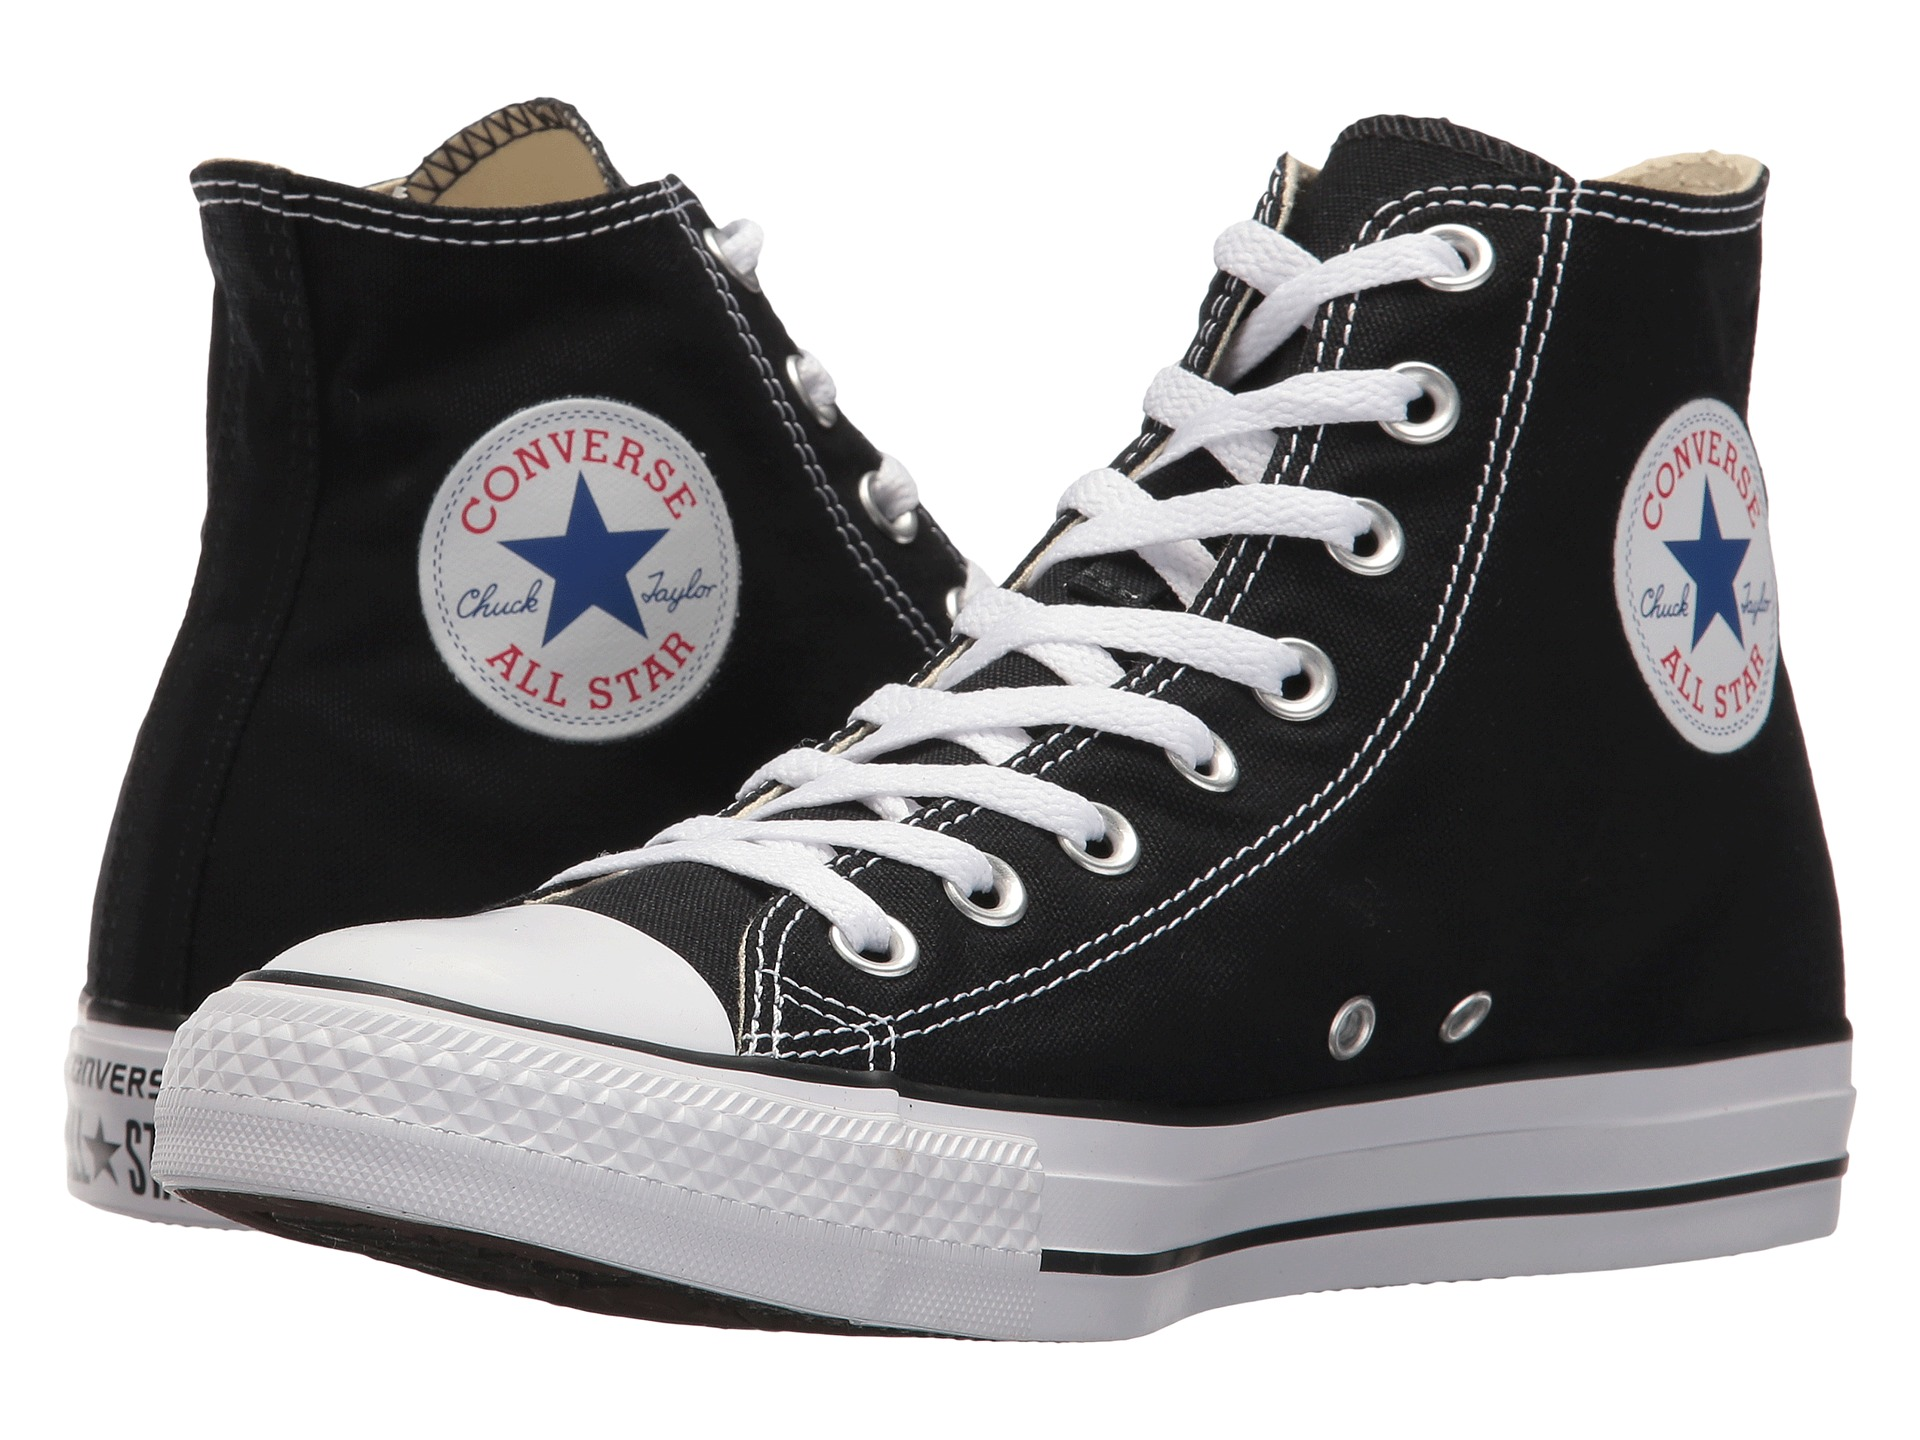 converse chuck taylor all star core hi at. Black Bedroom Furniture Sets. Home Design Ideas